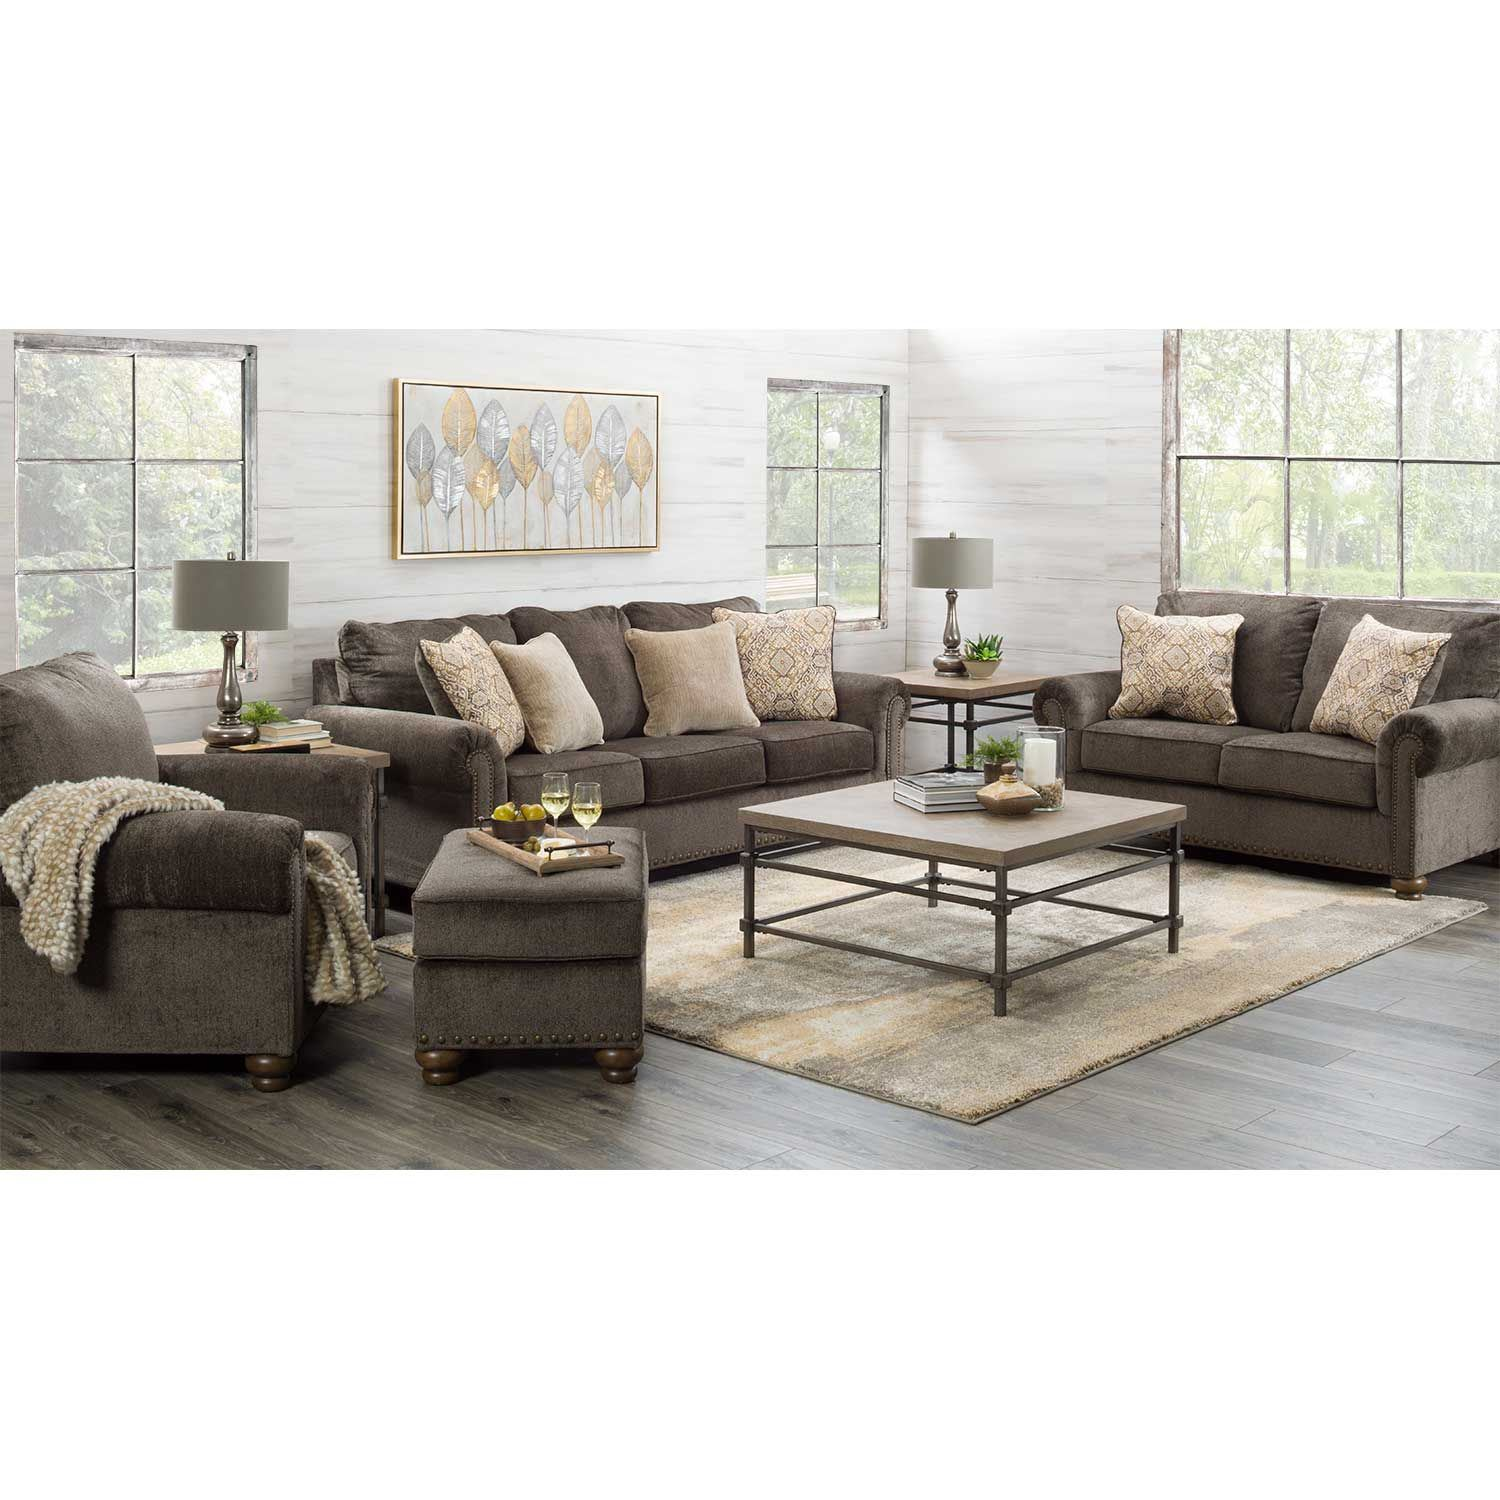 Picture of Stracelen Sable Loveseat